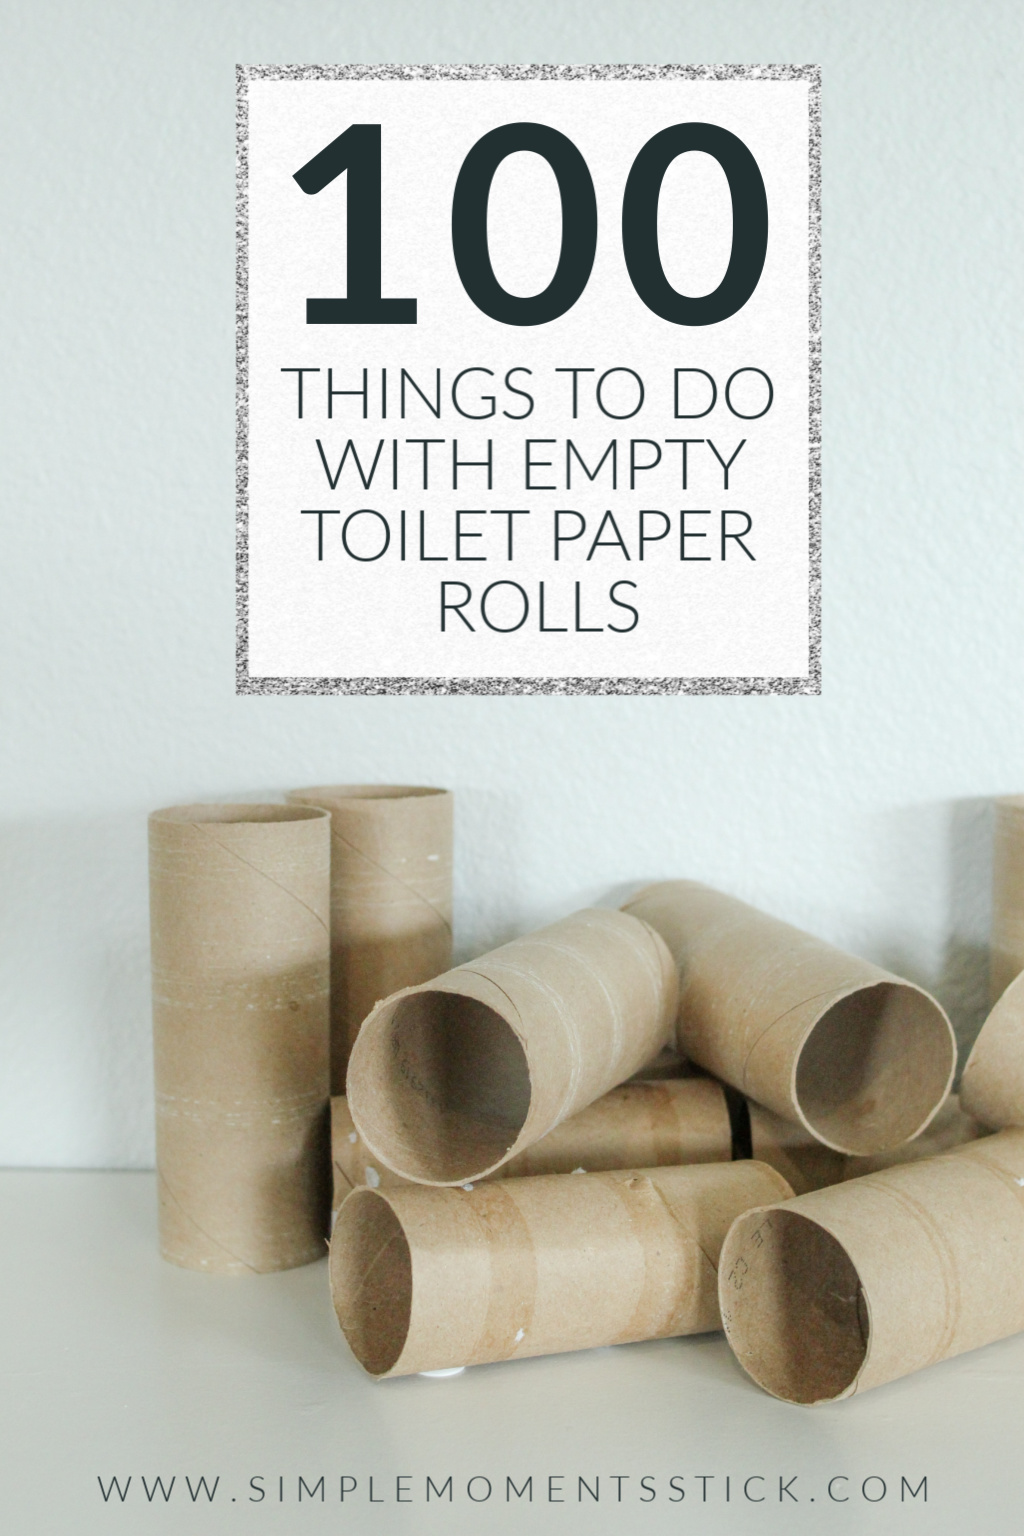 Things to do with toilet paper rolls. Empty toilet paper rolls. Things to do with empty toilet paper rolls